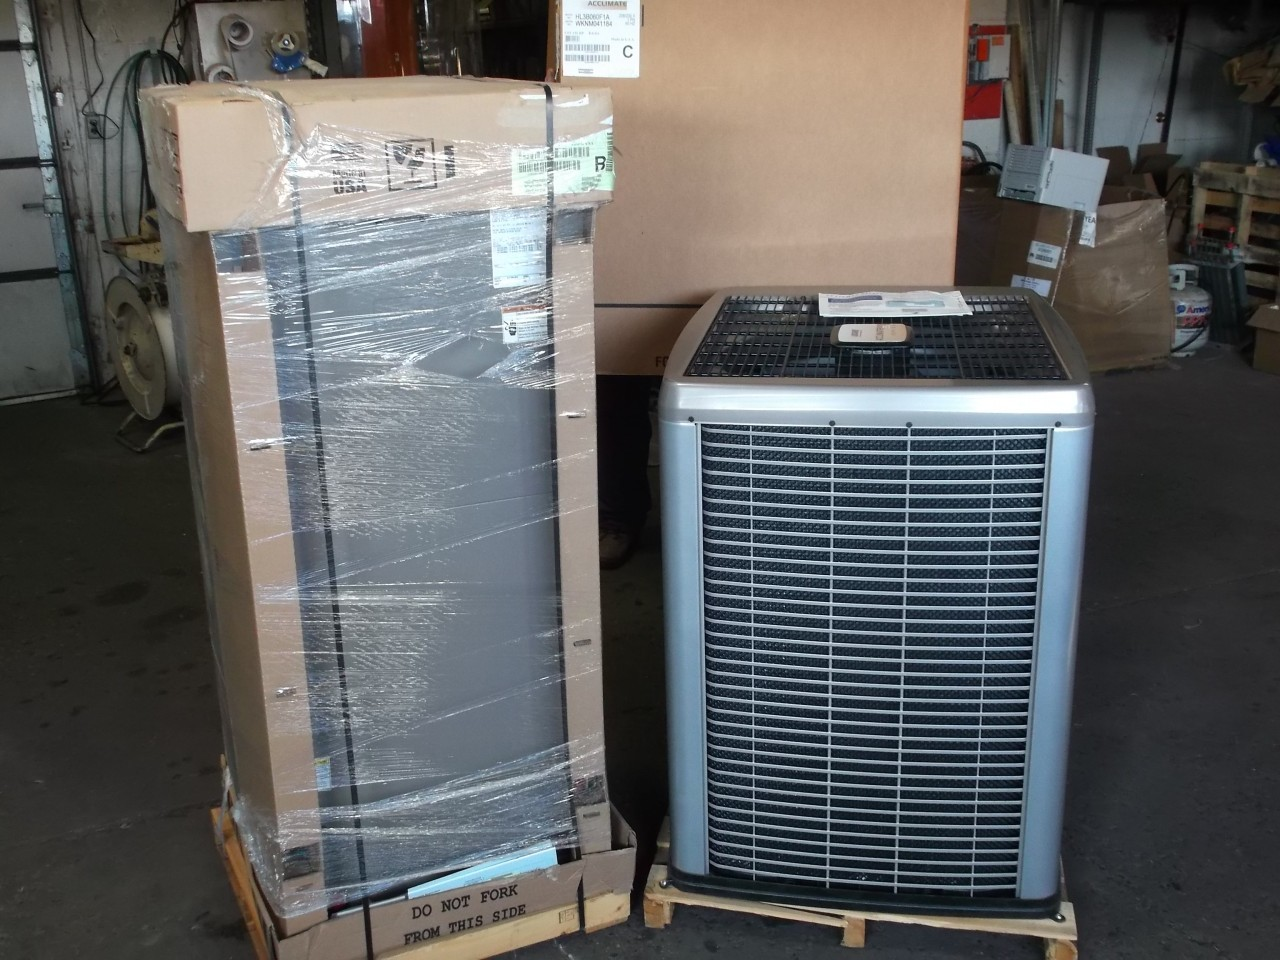 Shurail Hvac Video Image Gallery Proview Bryant Air Conditioner Wiring Diagram Luxaire 5 Ton 13 Seer Heat Pump R410a W Handler